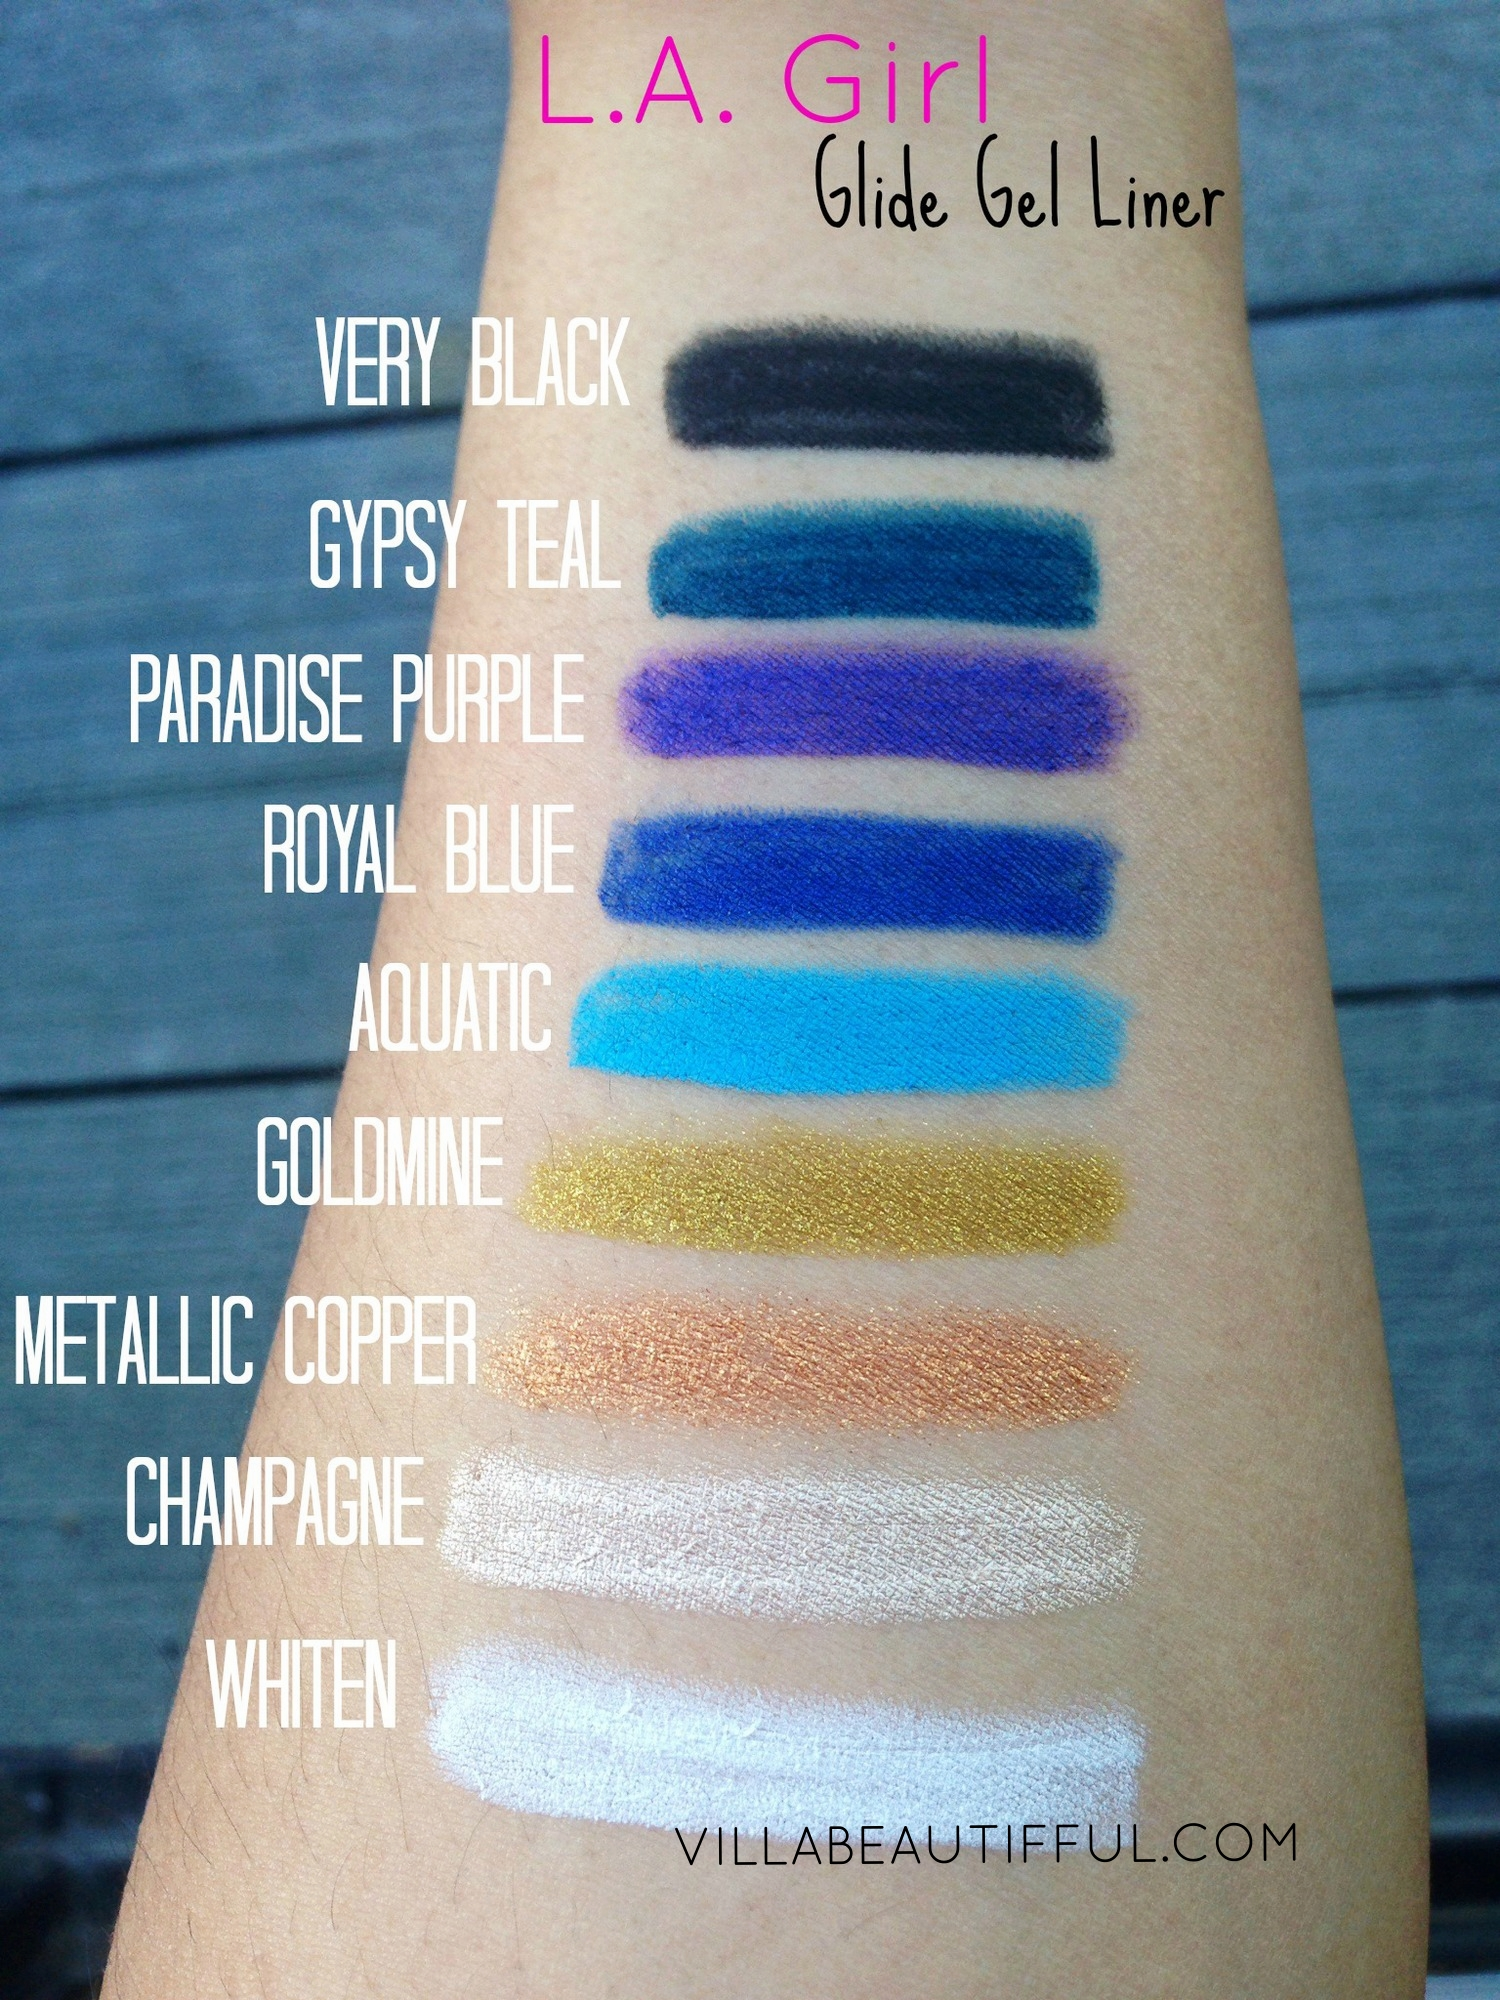 L.A. Girl Glide Gel Liner Swatches